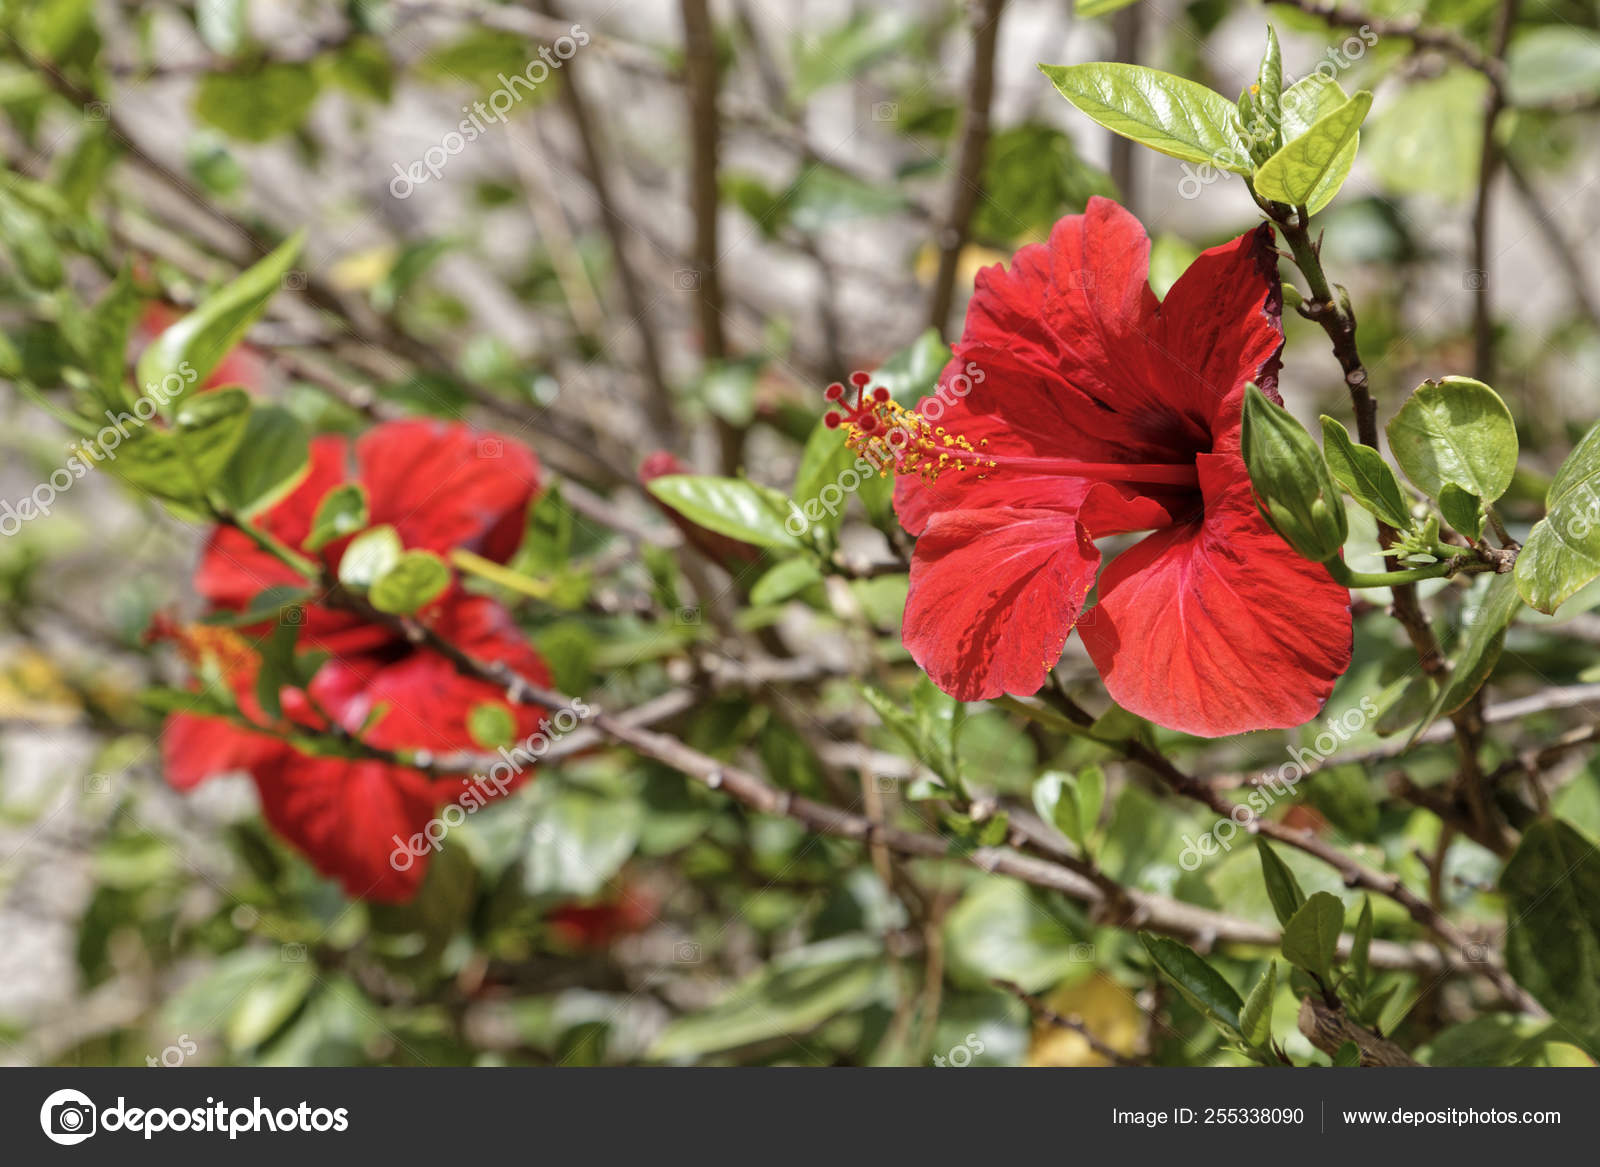 Italy Sicily Hibiscus Flowers Garden Stock Photo C Agiampiccolo 255338090